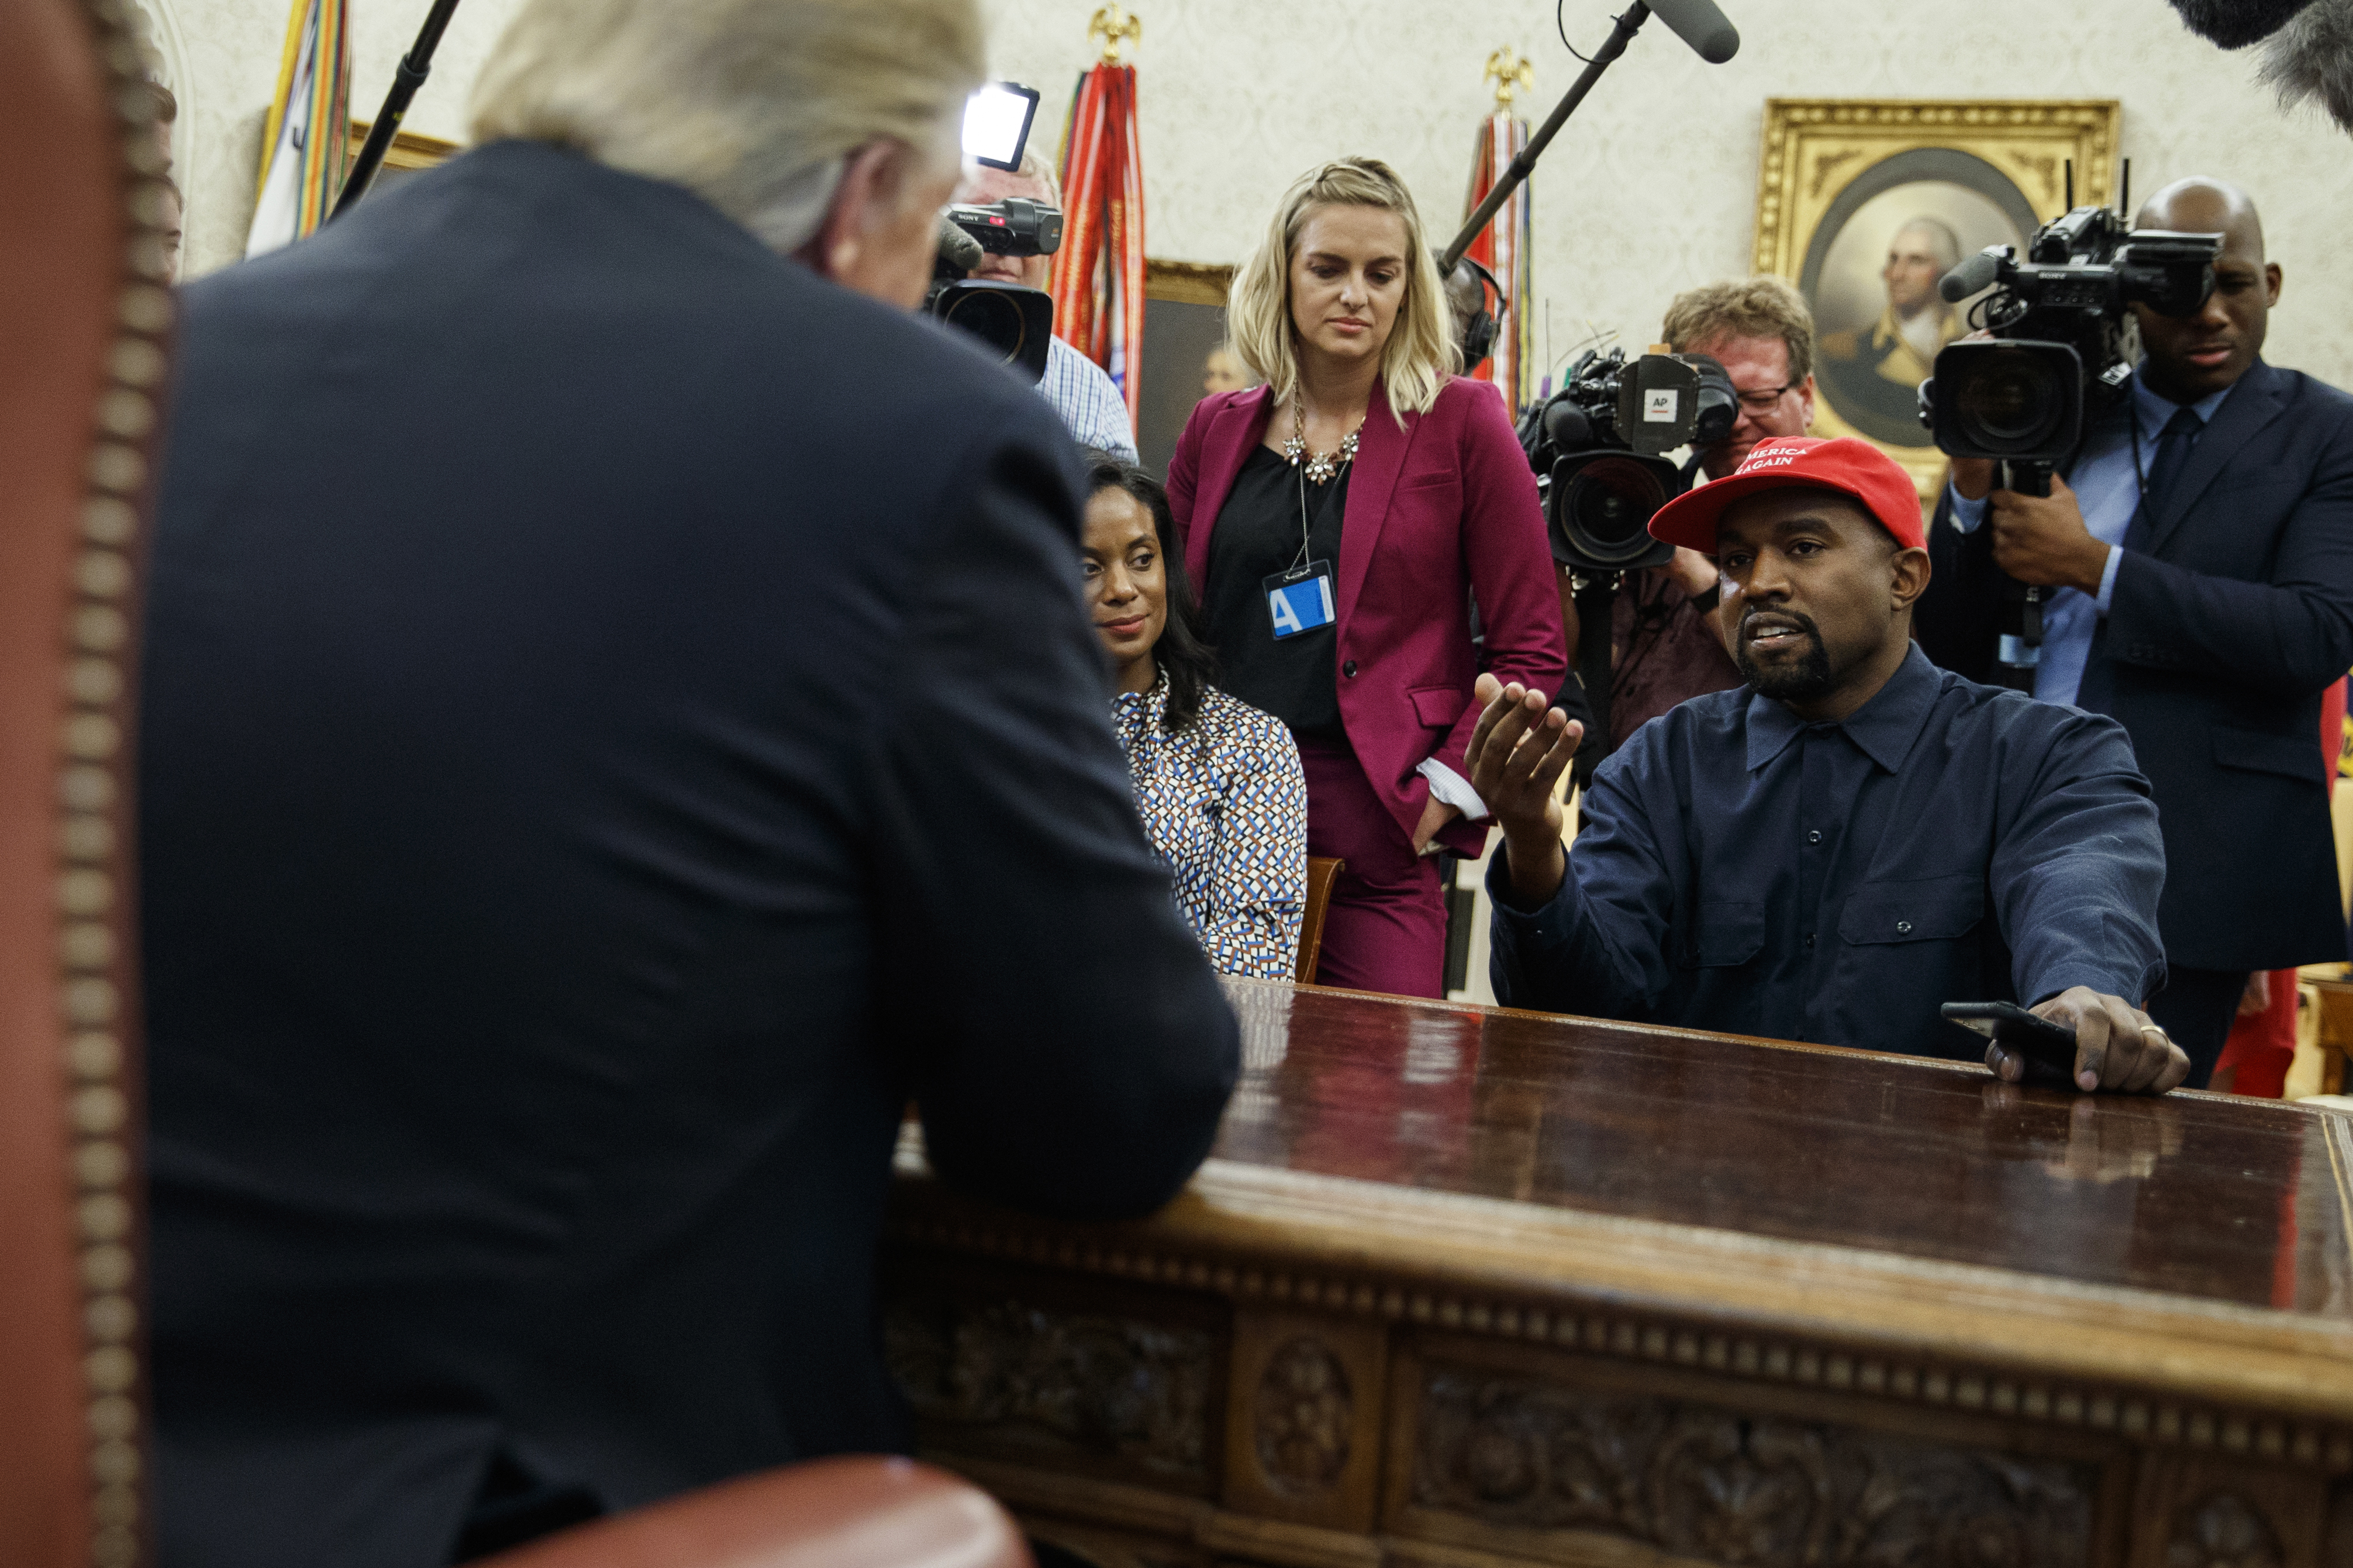 Fox swooned over Kanye West at the White House. Here's how it covered rappers visiting Obama.